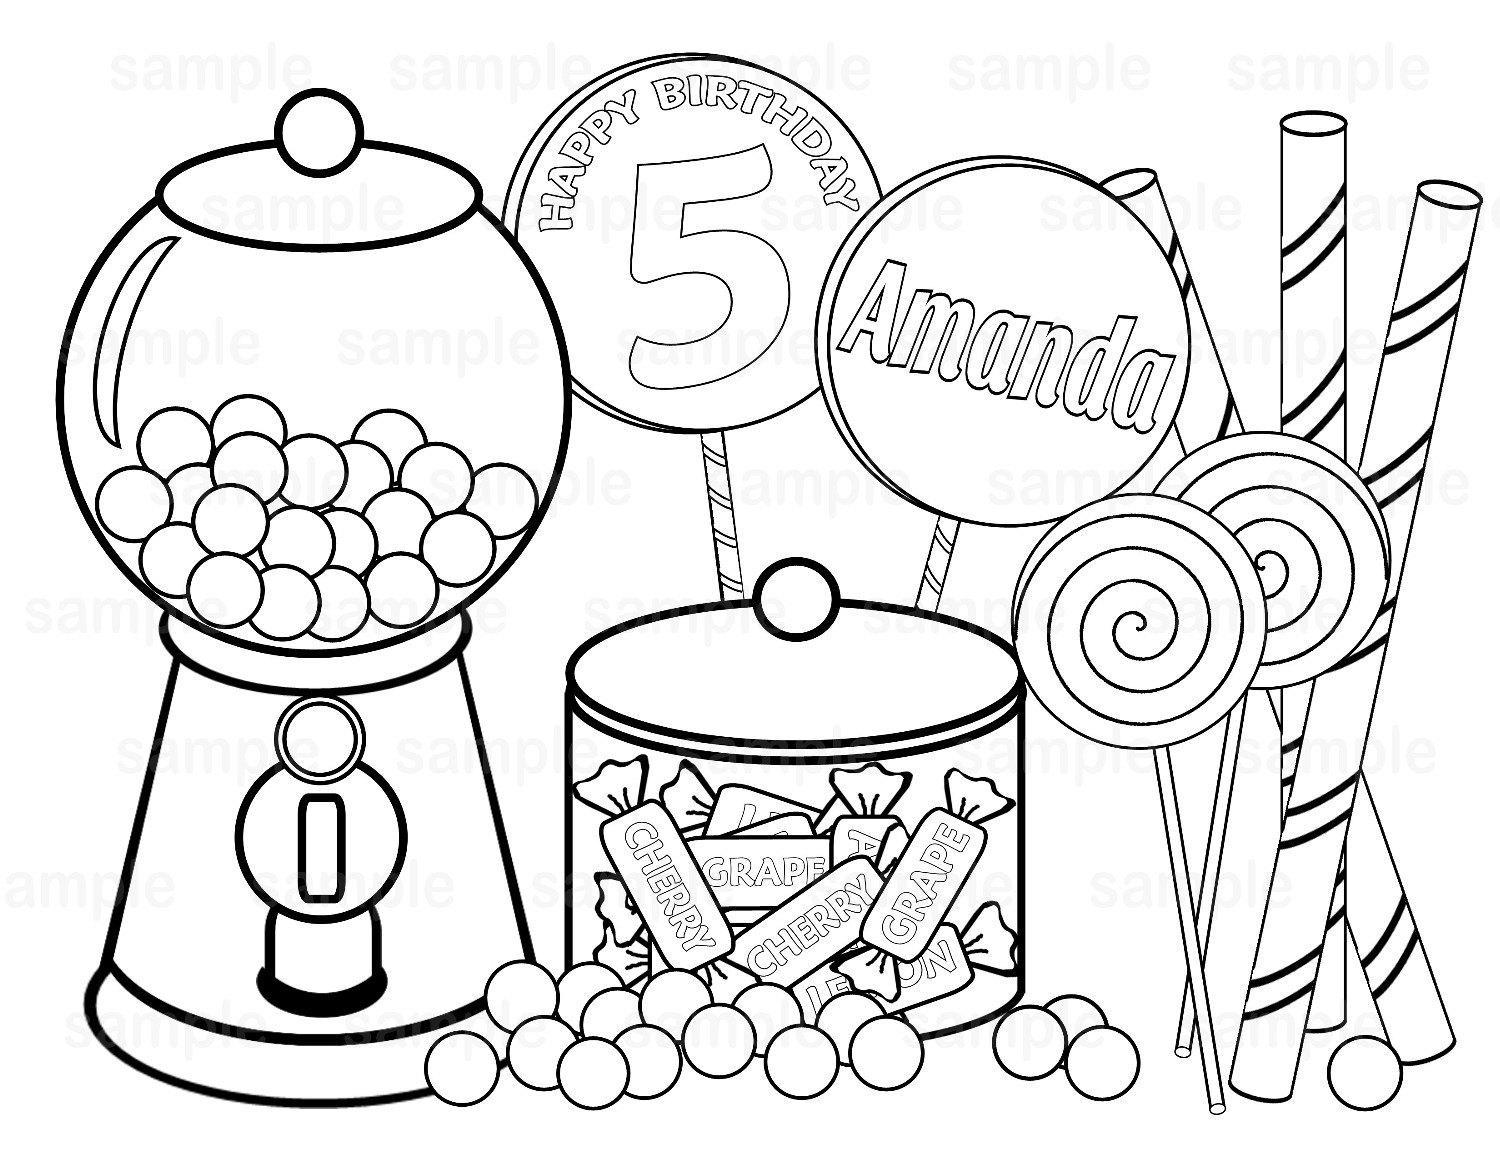 printable picture free printable cross coloring pages for kids cool2bkids printable picture